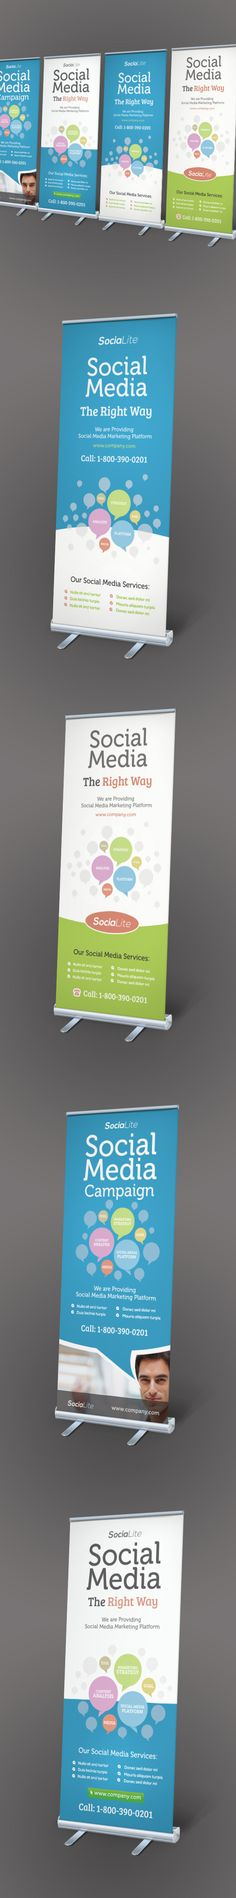 Social Media Marketing Roll-up Banners by Kinzi Wijaya, via Behance